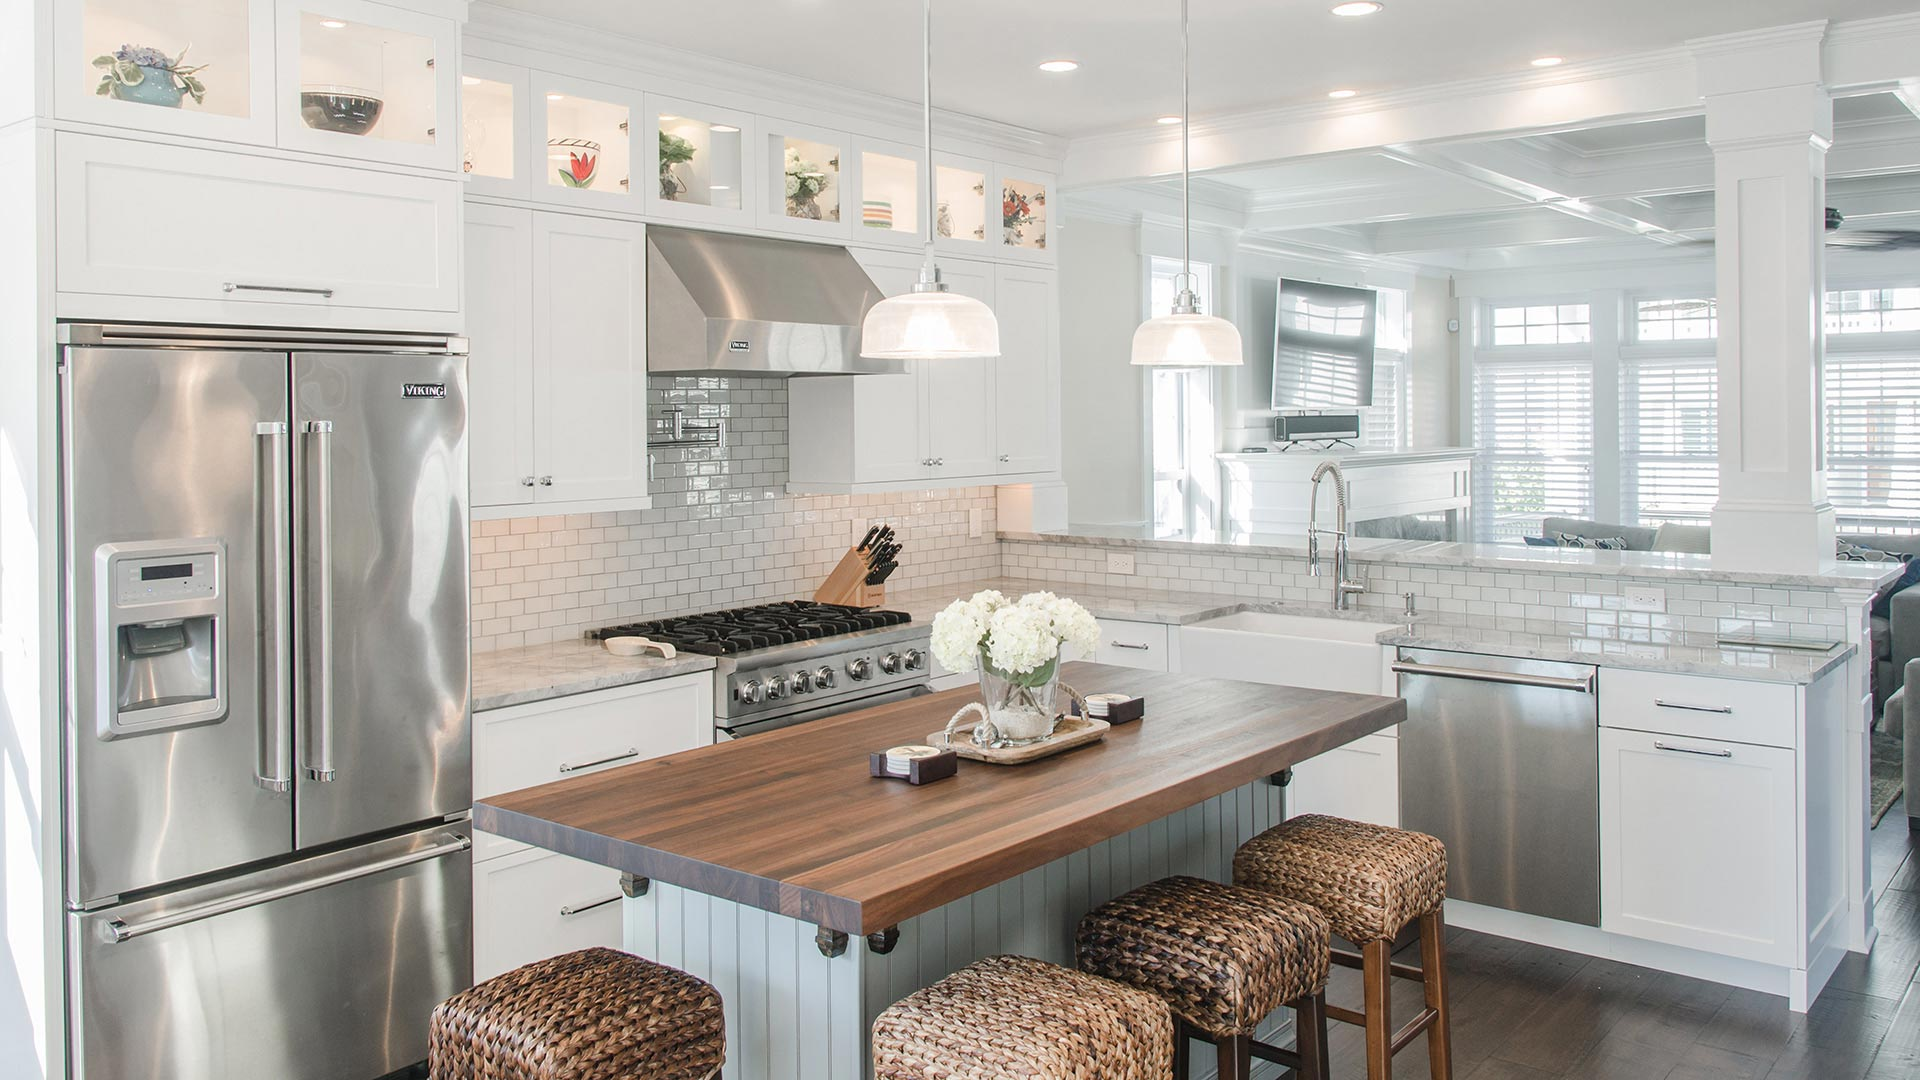 Transitional Kitchen - 34th Street, Longport NJ